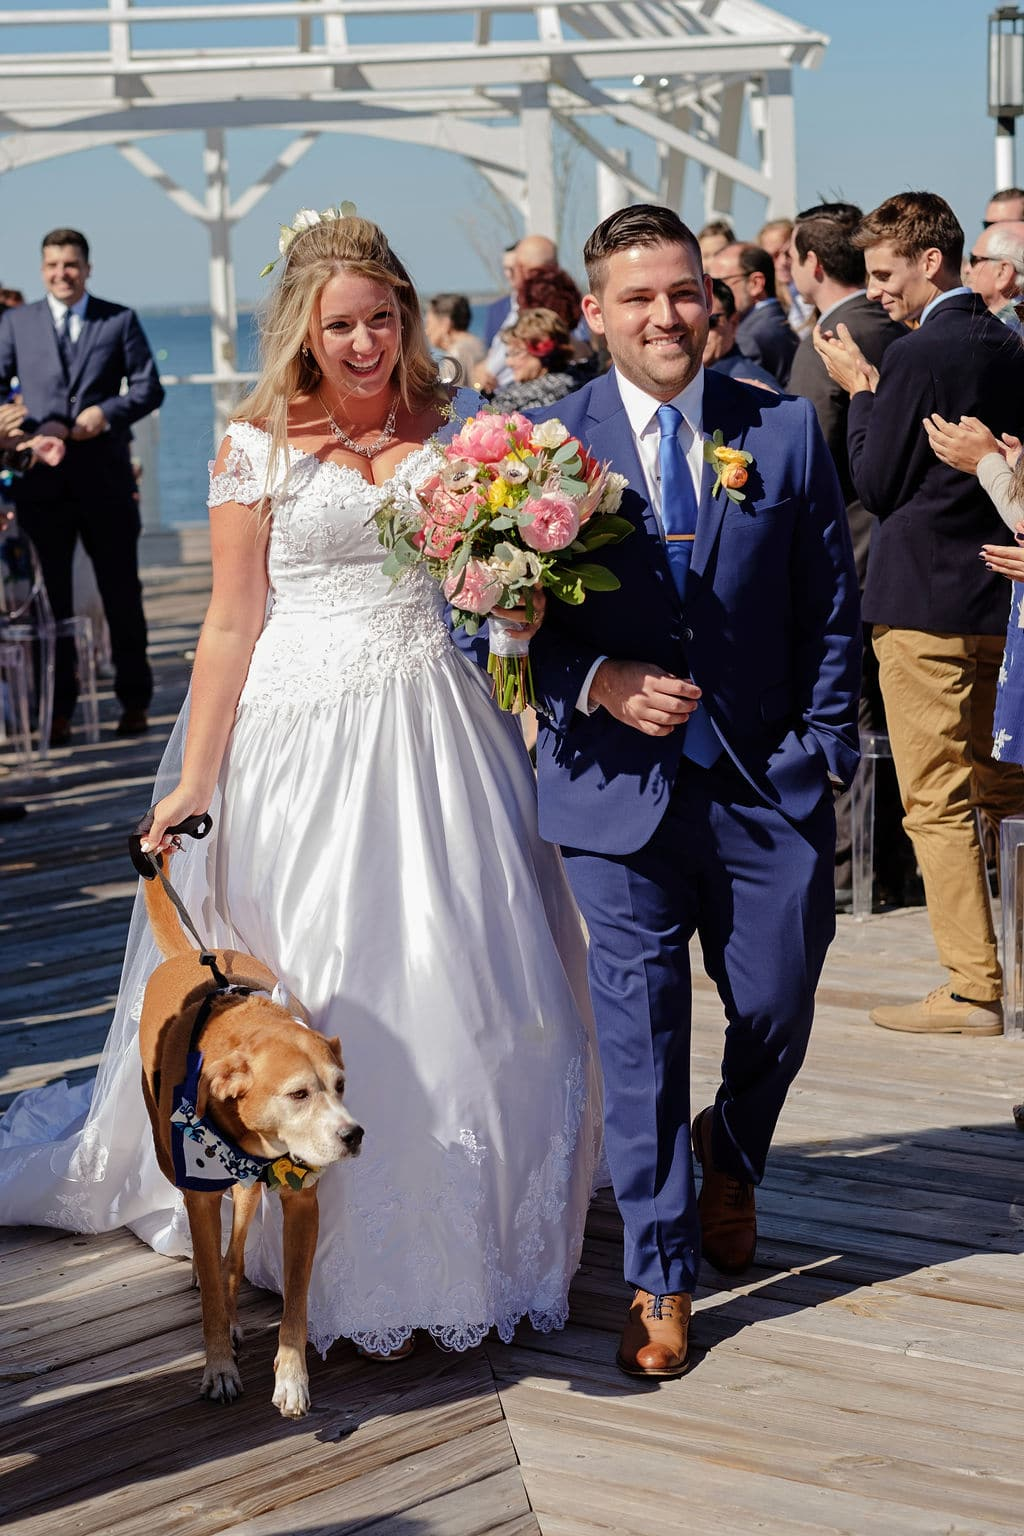 insider tips from married wedding vendors, include your pet when walking down the aisle